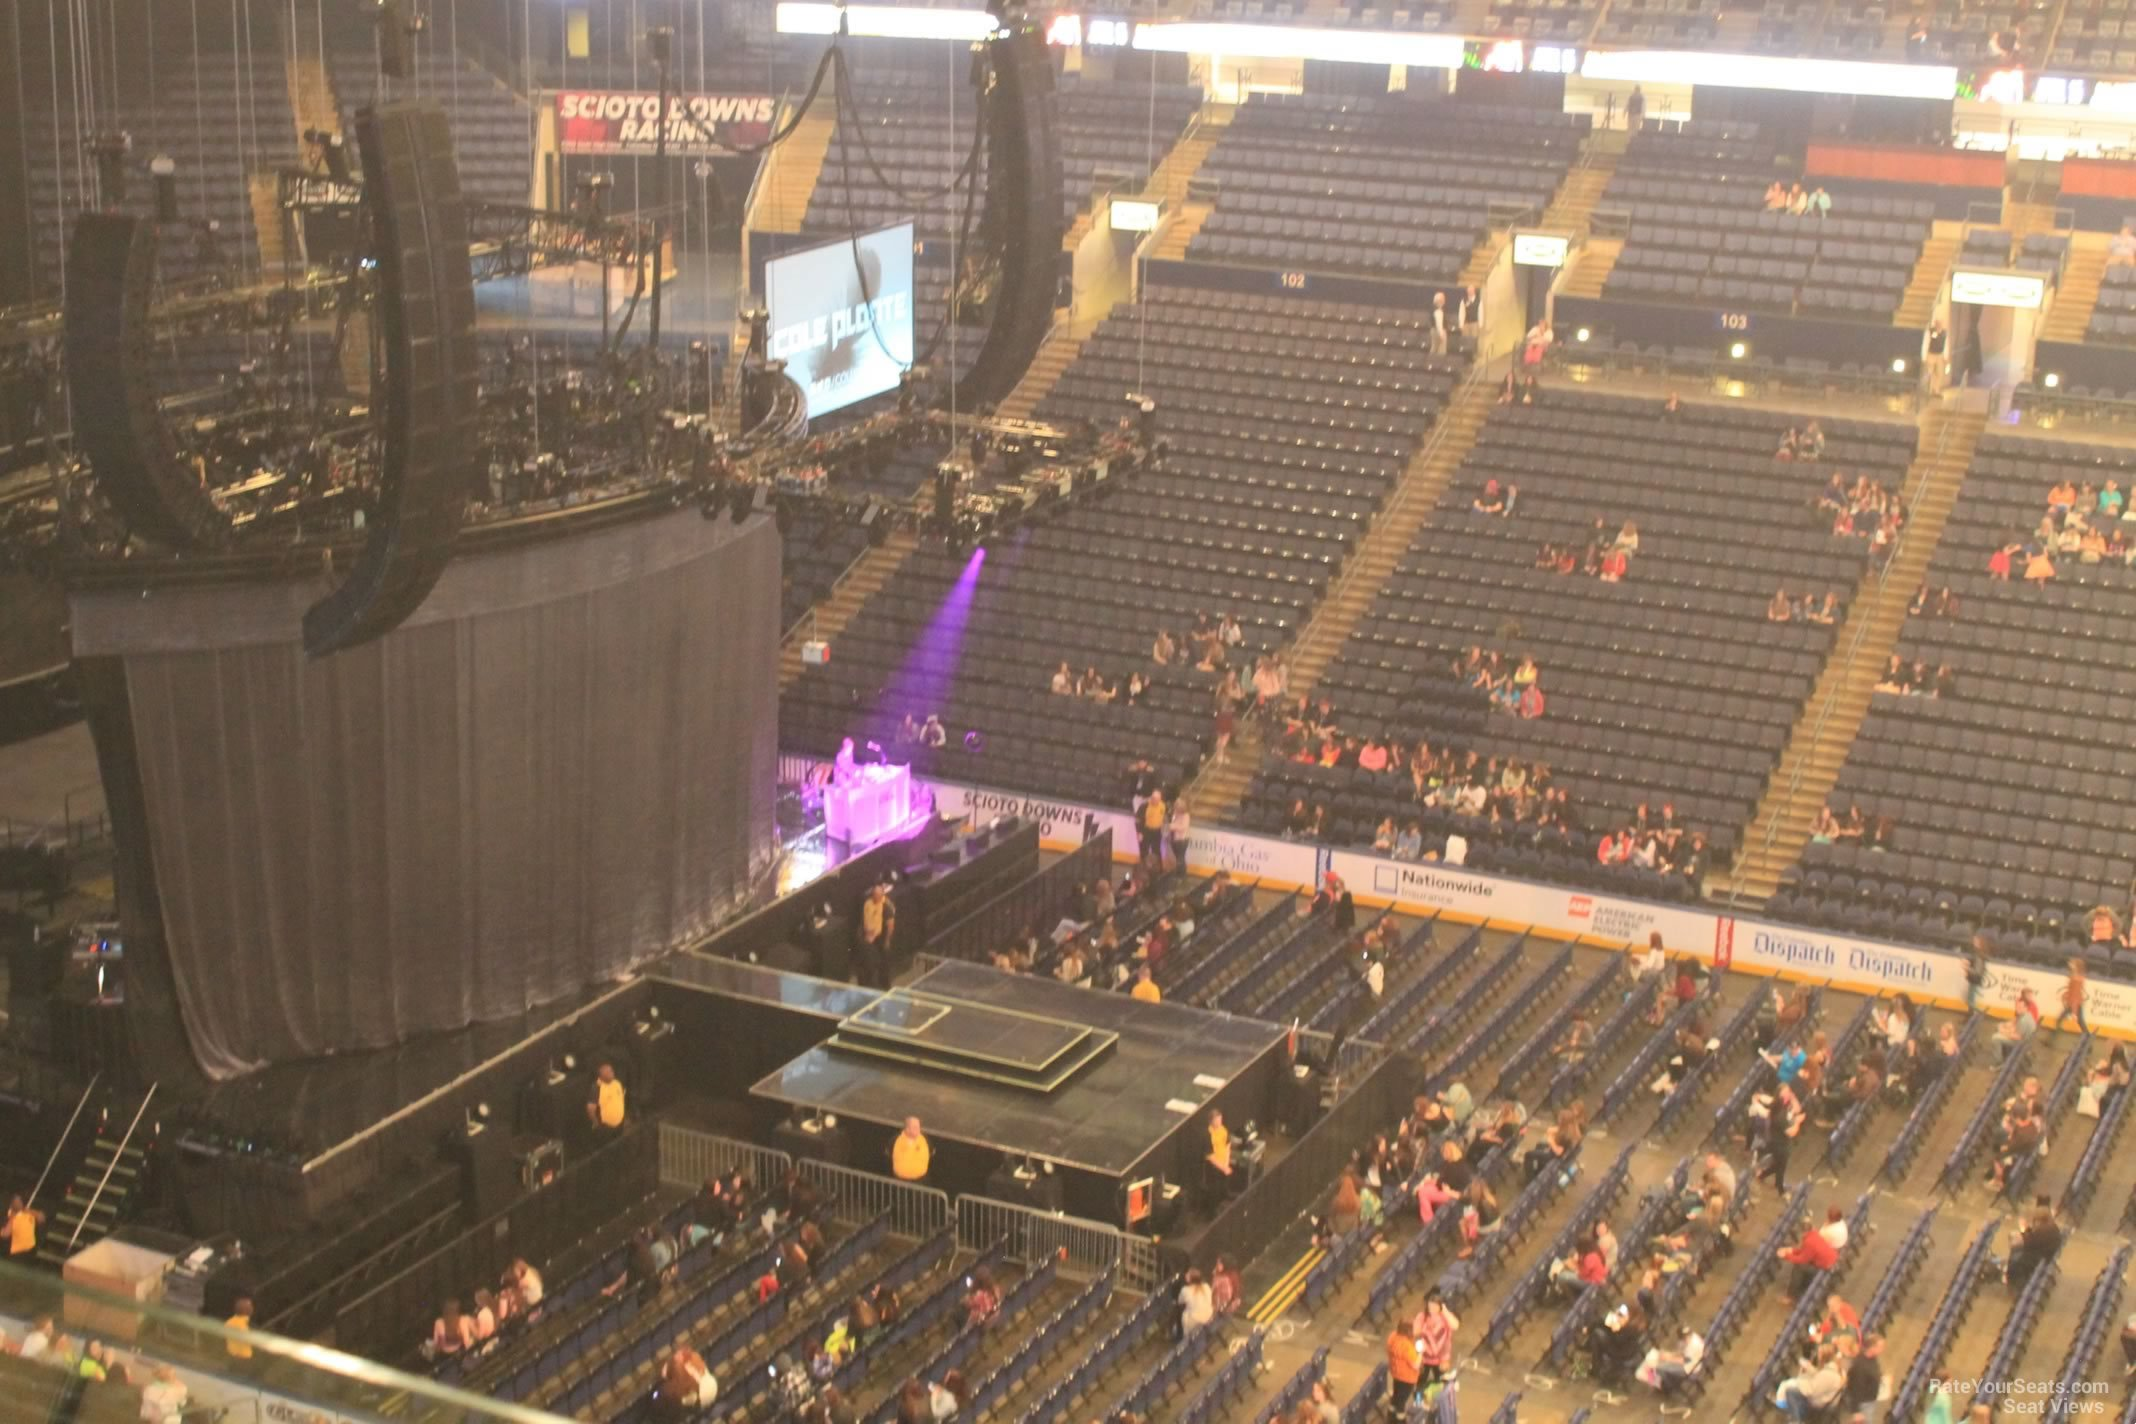 Nationwide Arena Section 217 Concert Seating